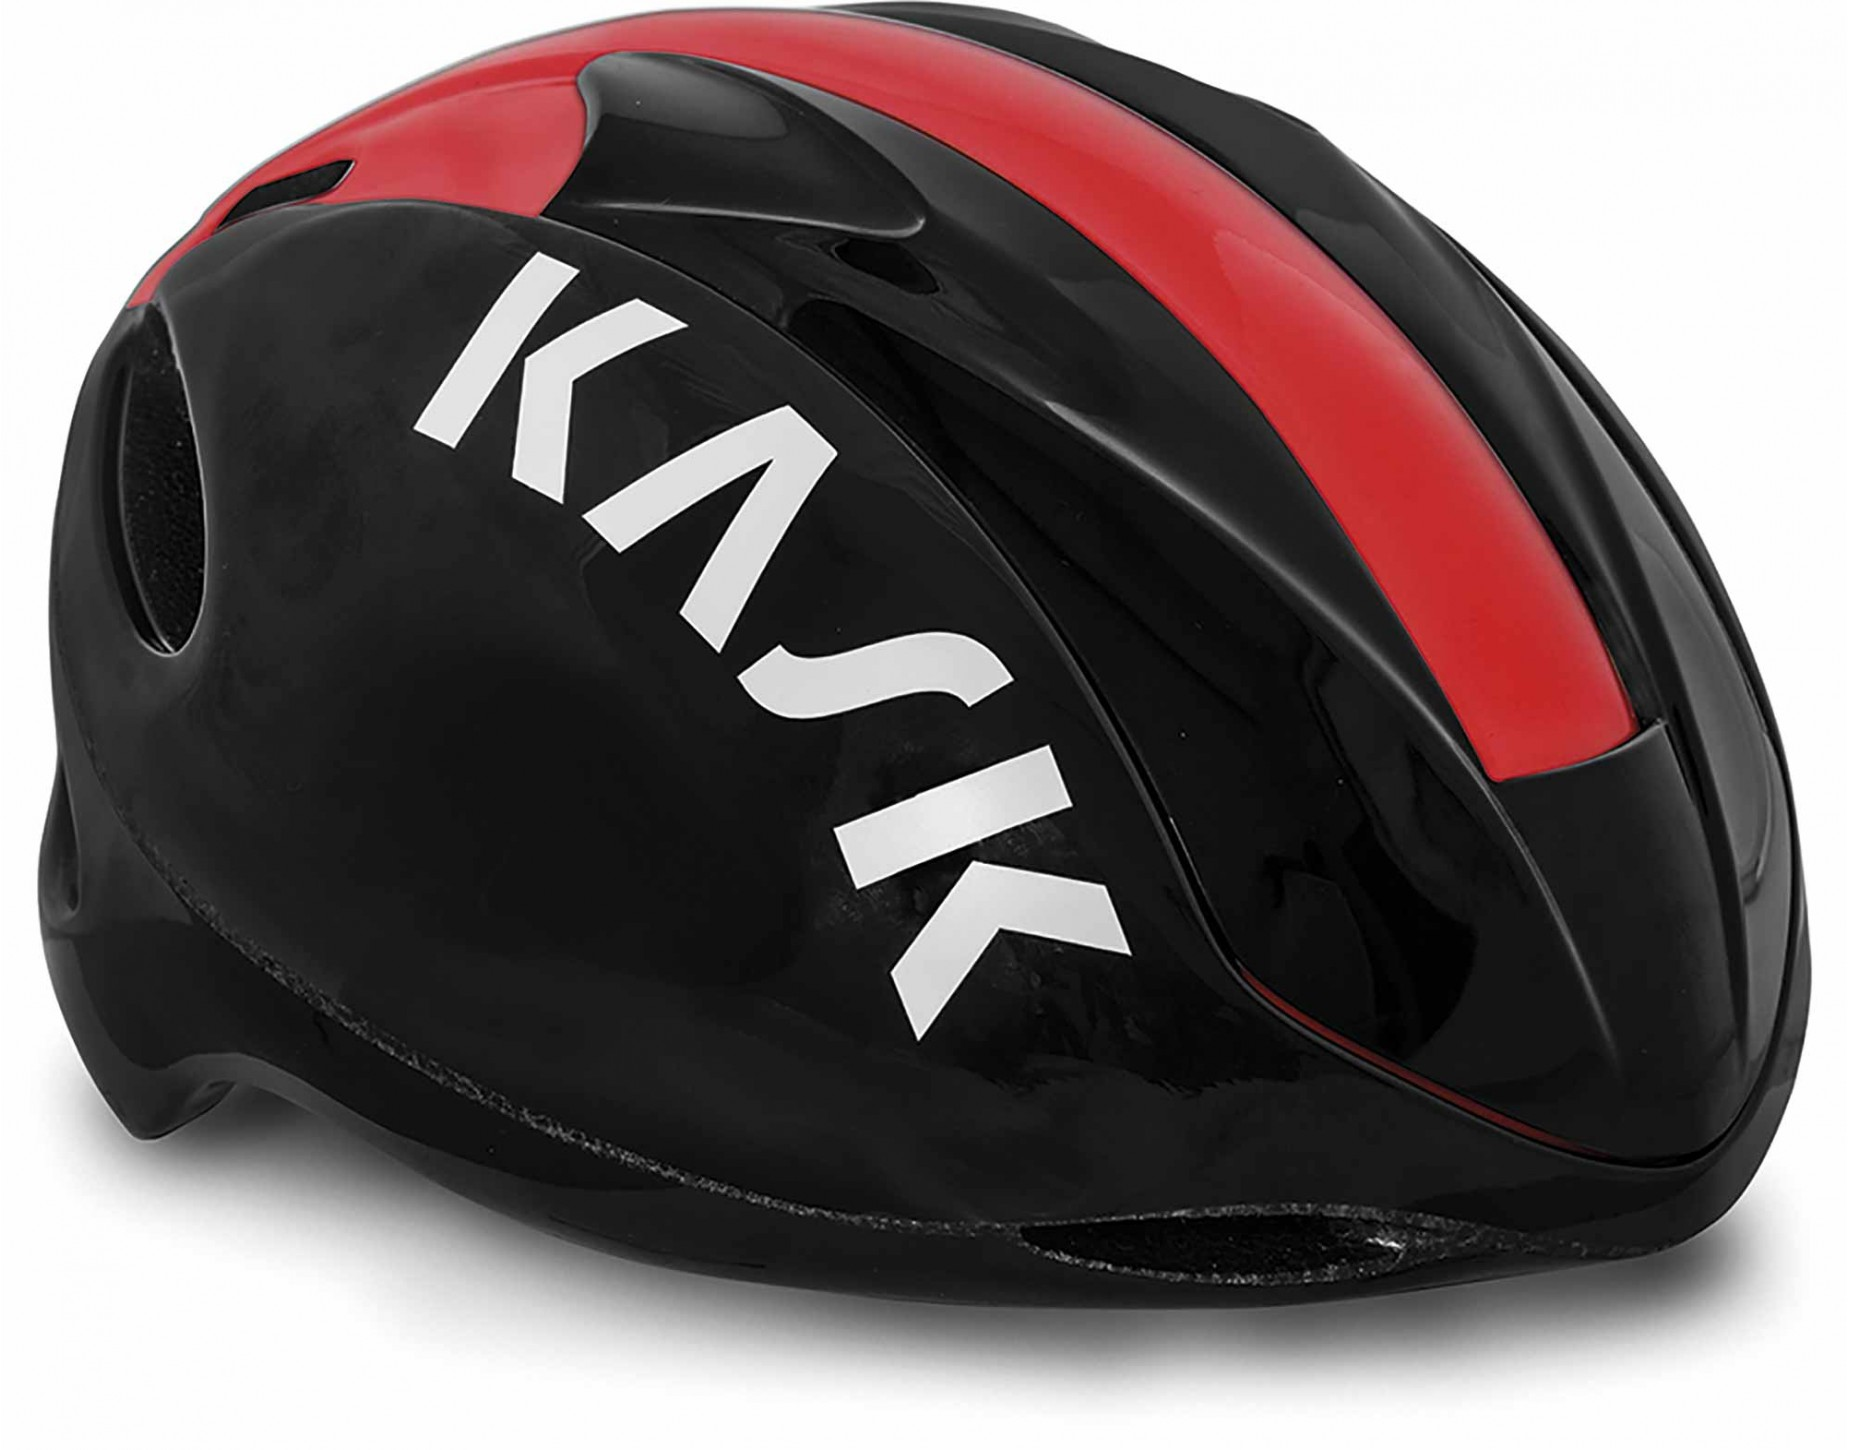 kask infinity casque de route black red. Black Bedroom Furniture Sets. Home Design Ideas